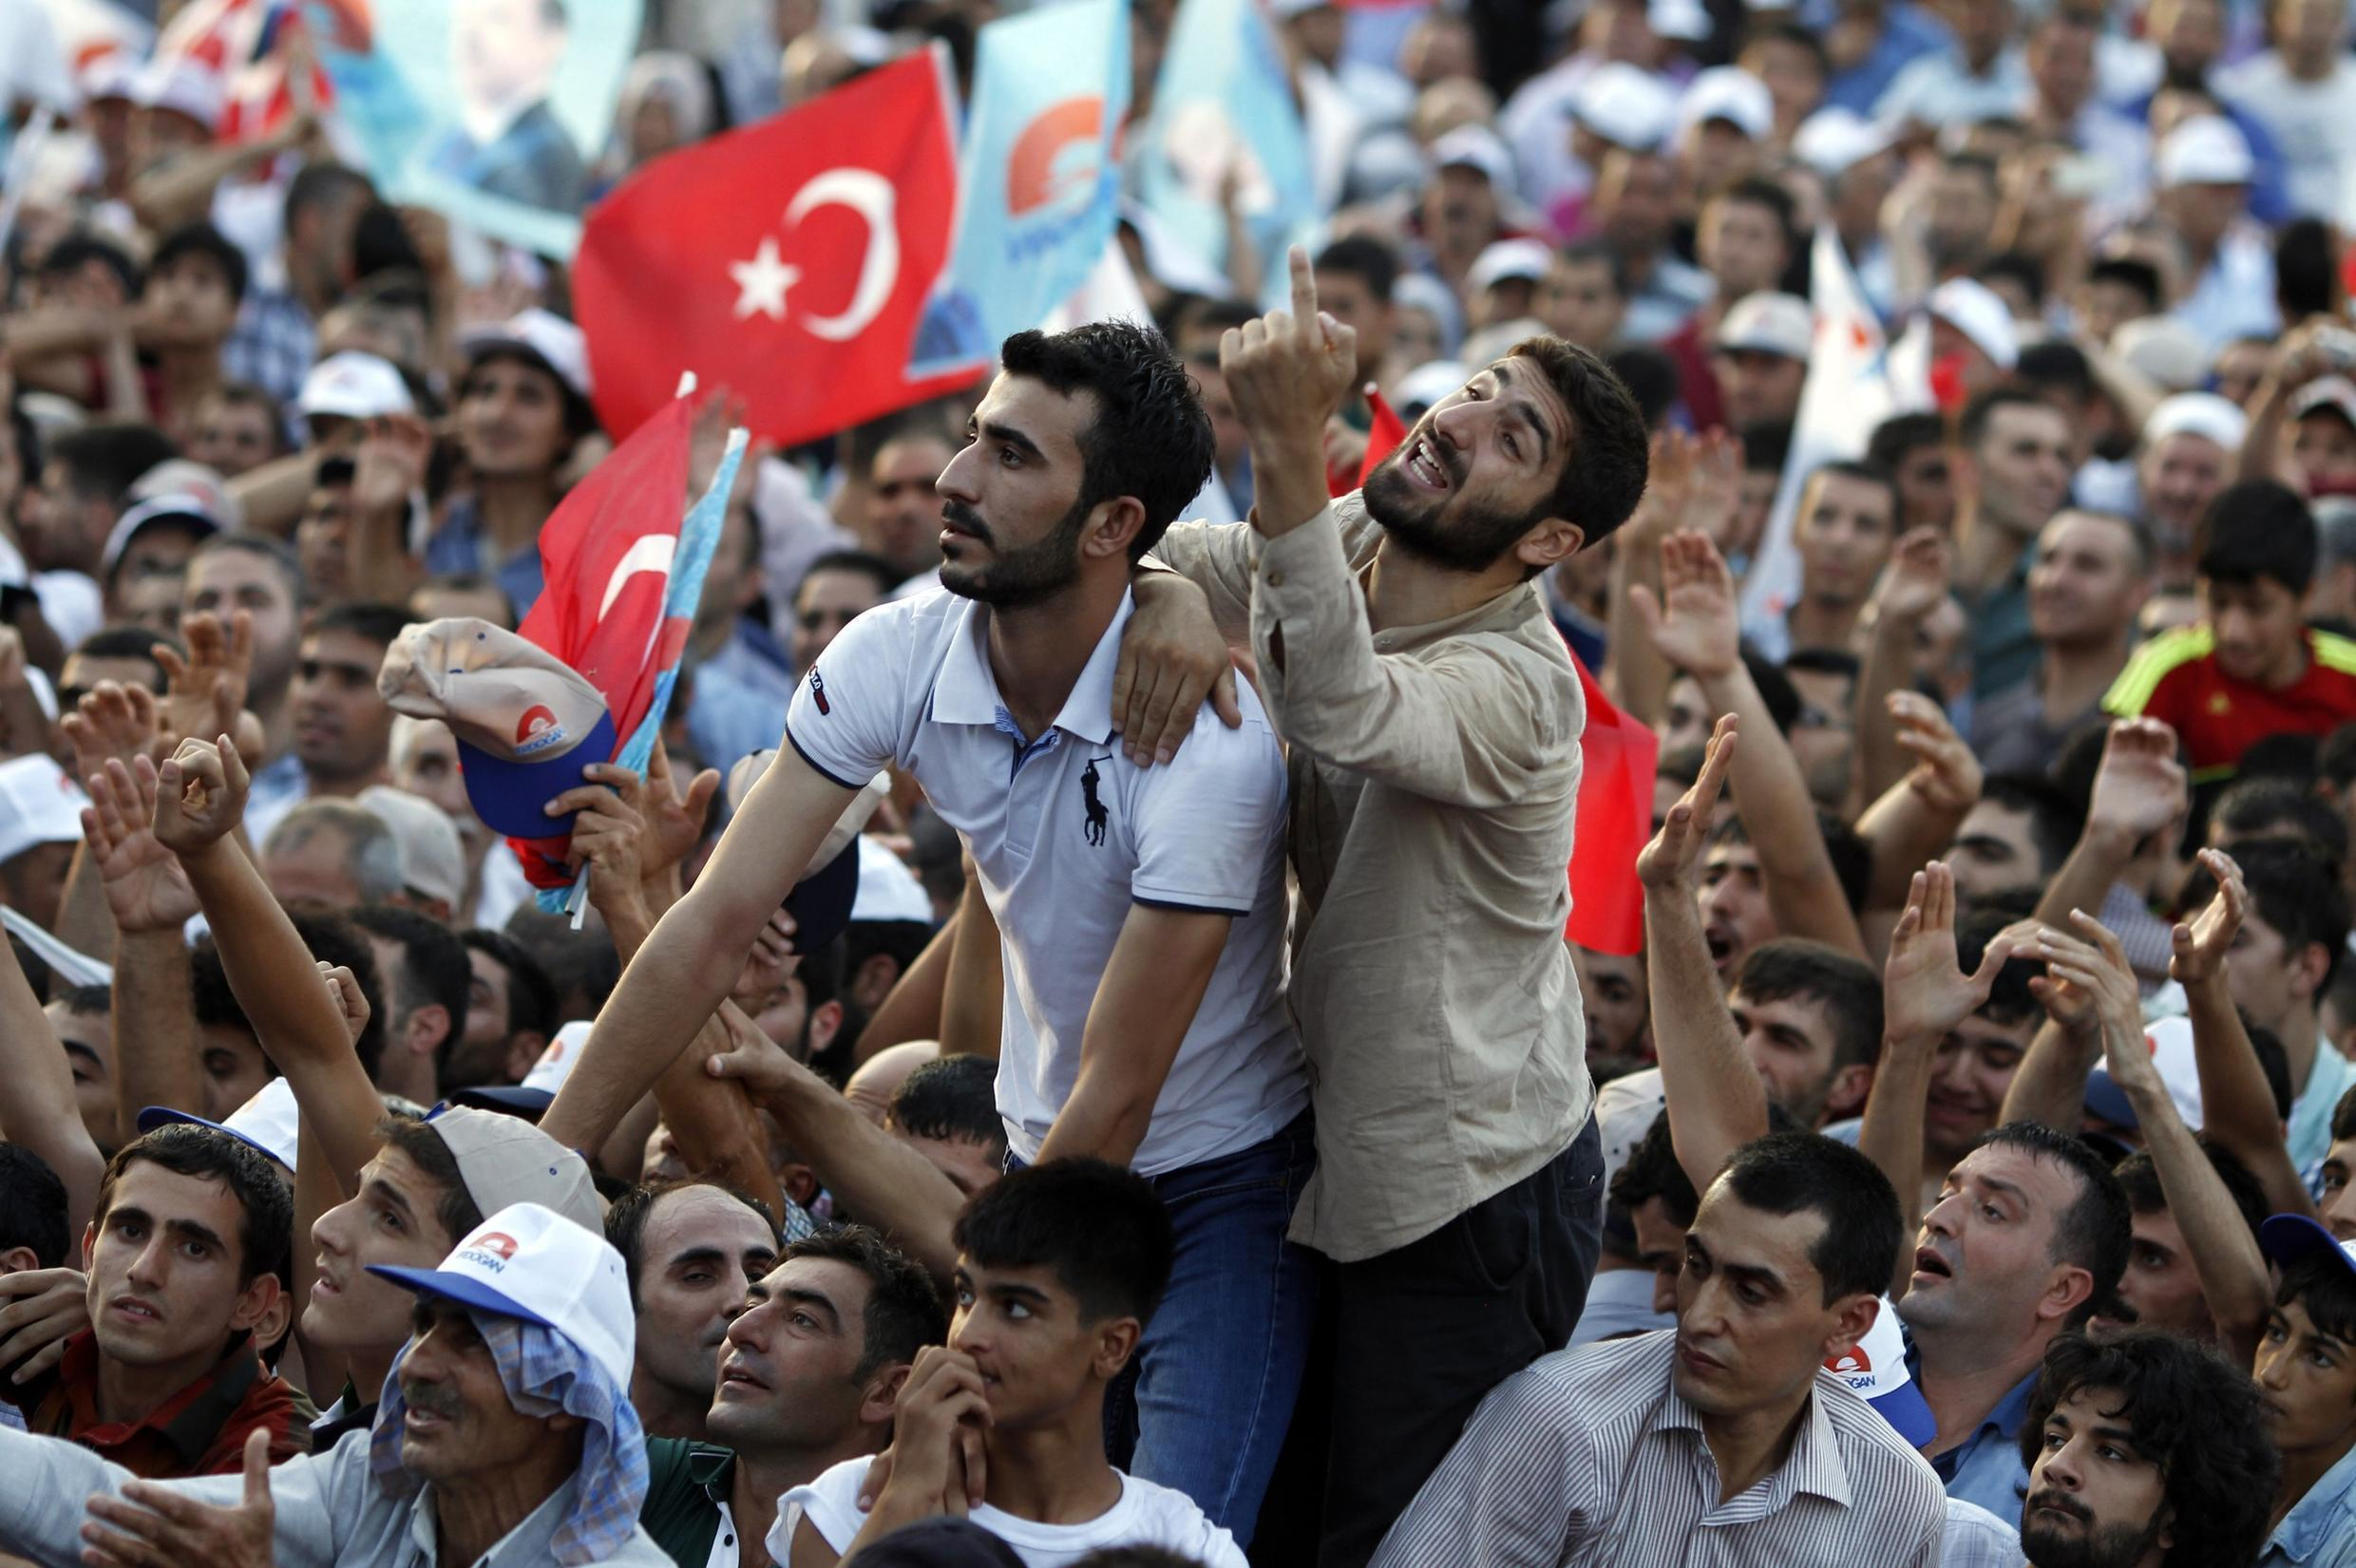 Click here for our coverage of Turkey presidential election 2014